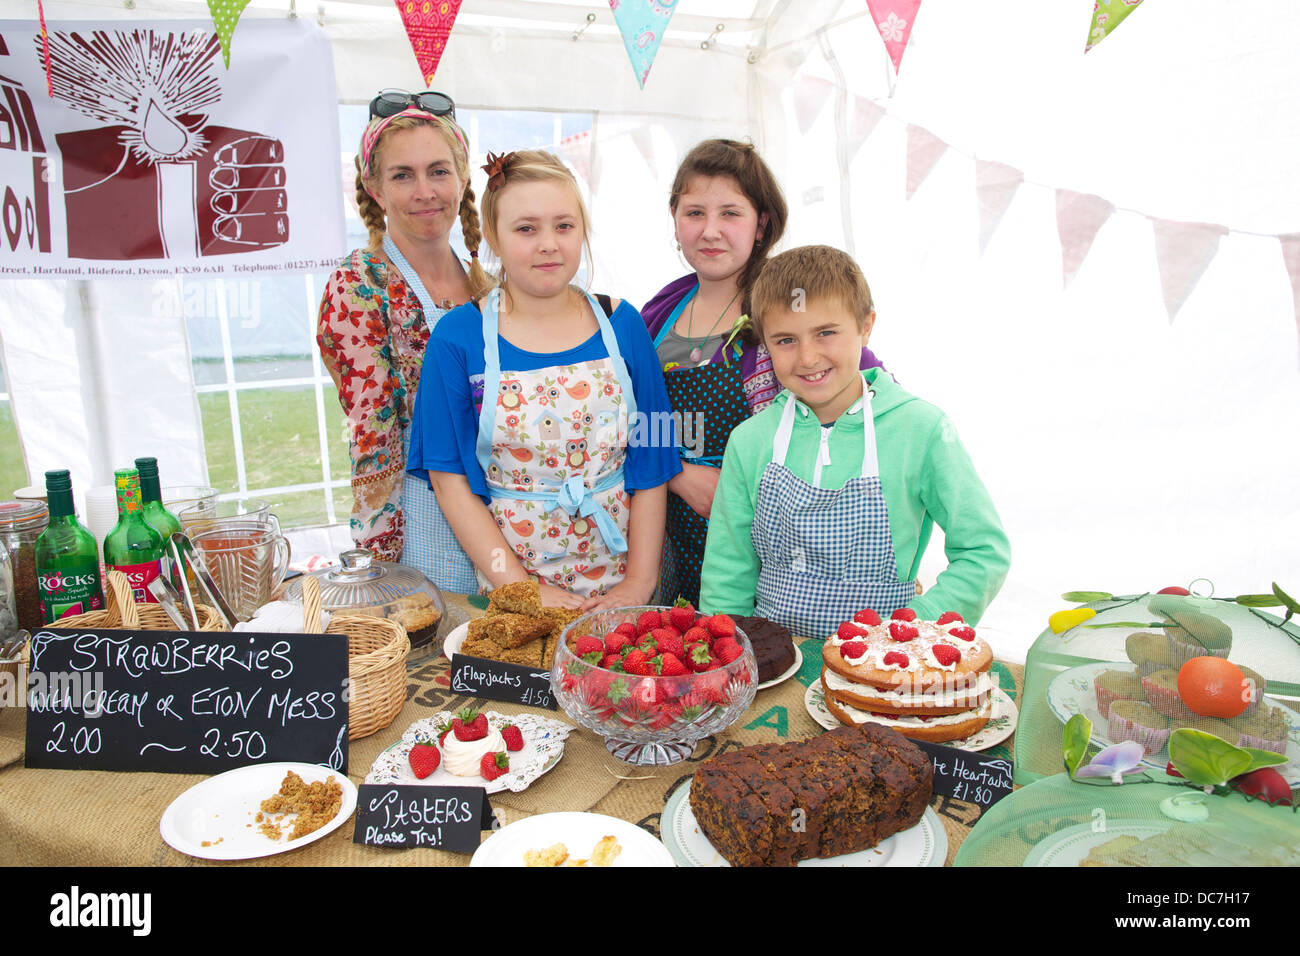 Mums and pupils from the Small School at Hartland N Devon are preparing and selling organic cakes, teas and coffees - Stock Image